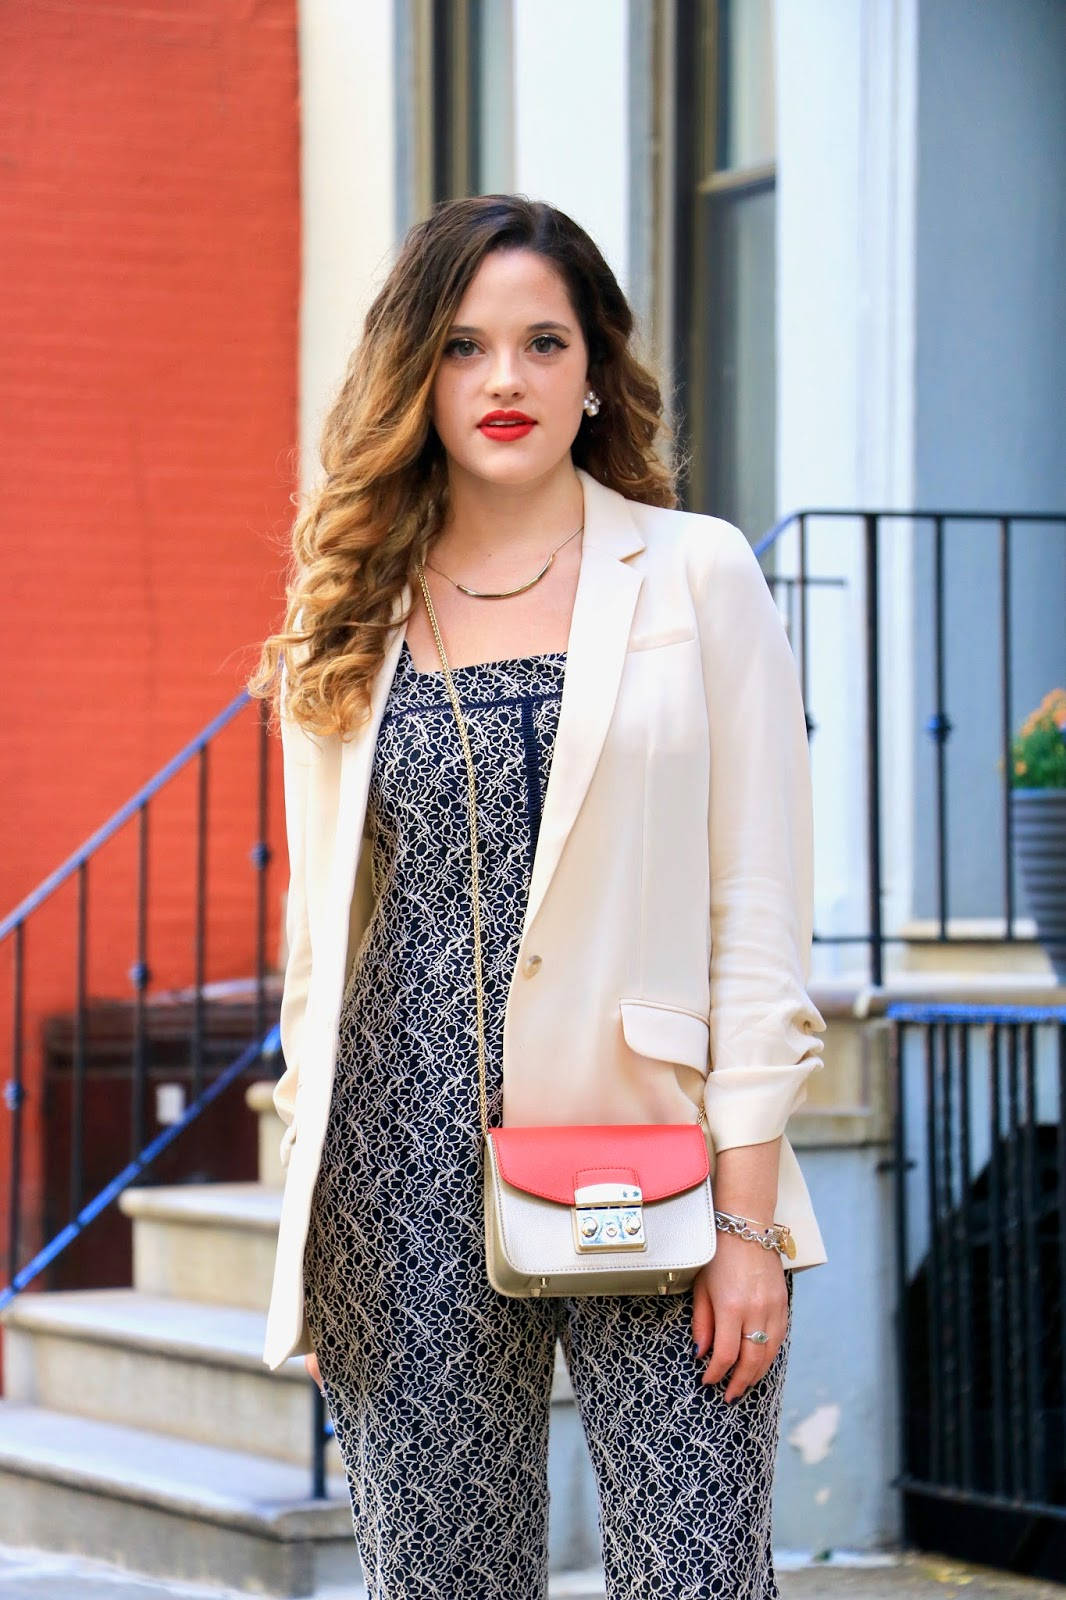 NYC fashion blogger Kathleen Harper showing how to wear a boyfriend blazer